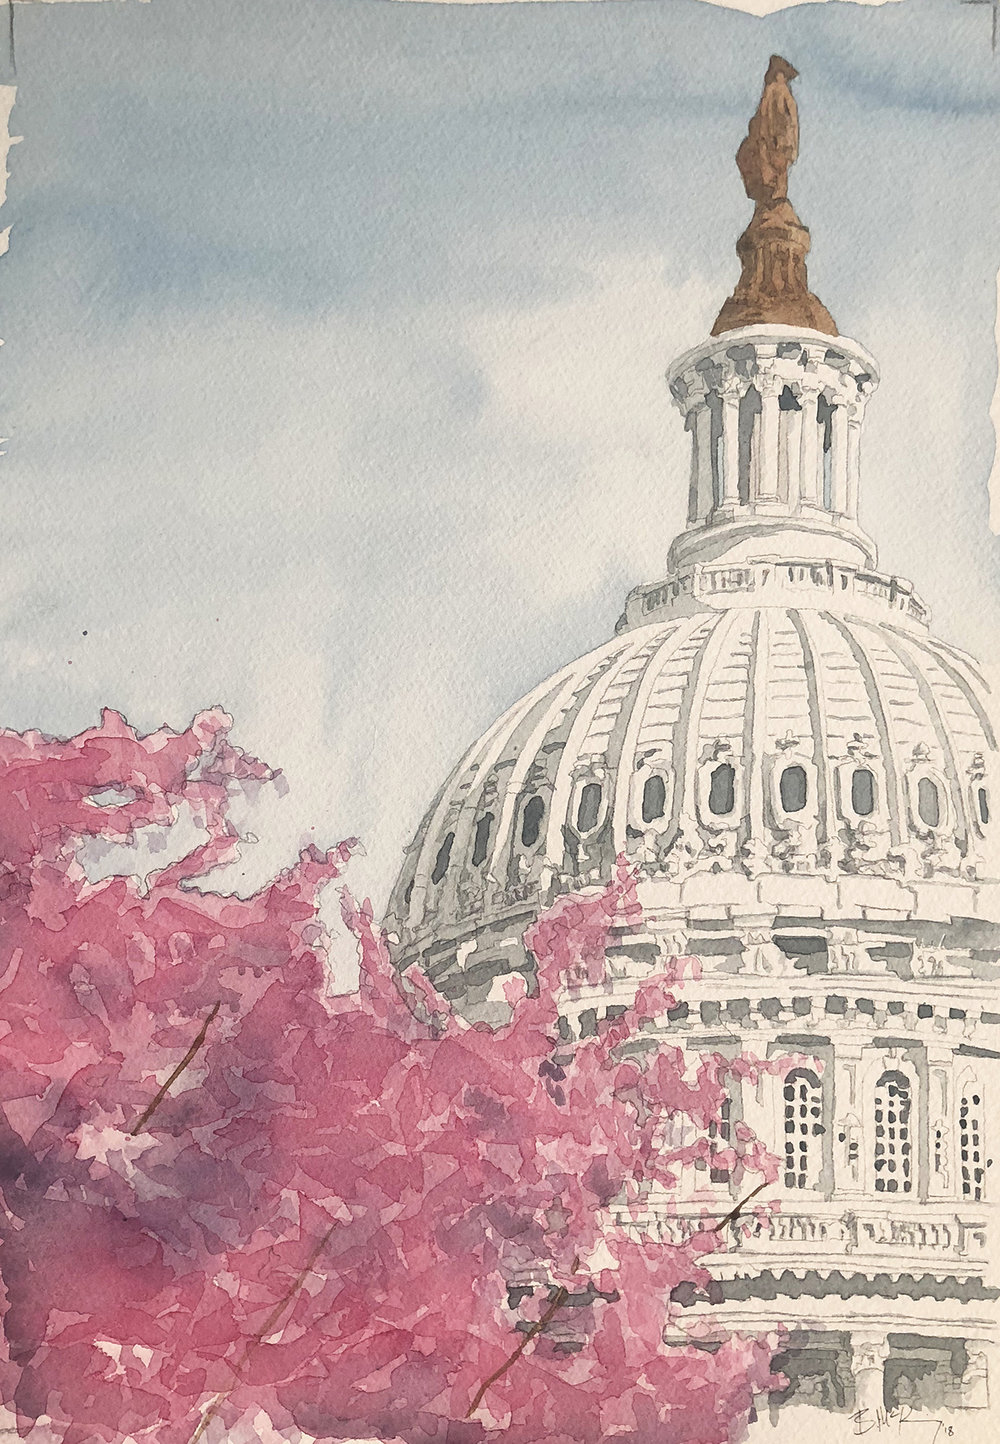 DC Dogwood, Watercolor on 300 lb, 11x17 inches, 2018